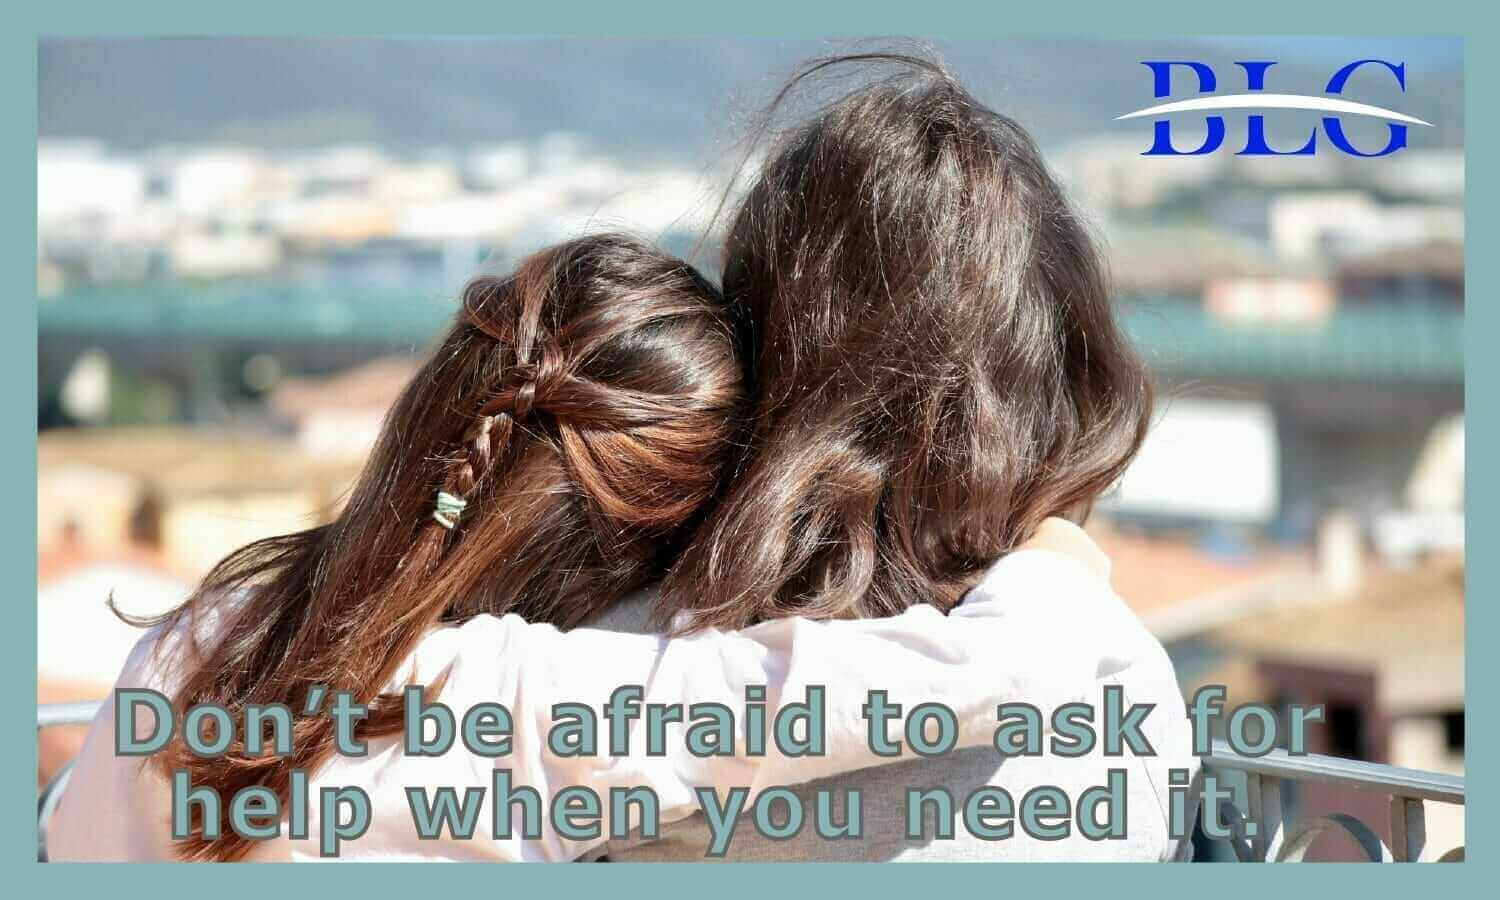 Ask for Help When You Need It